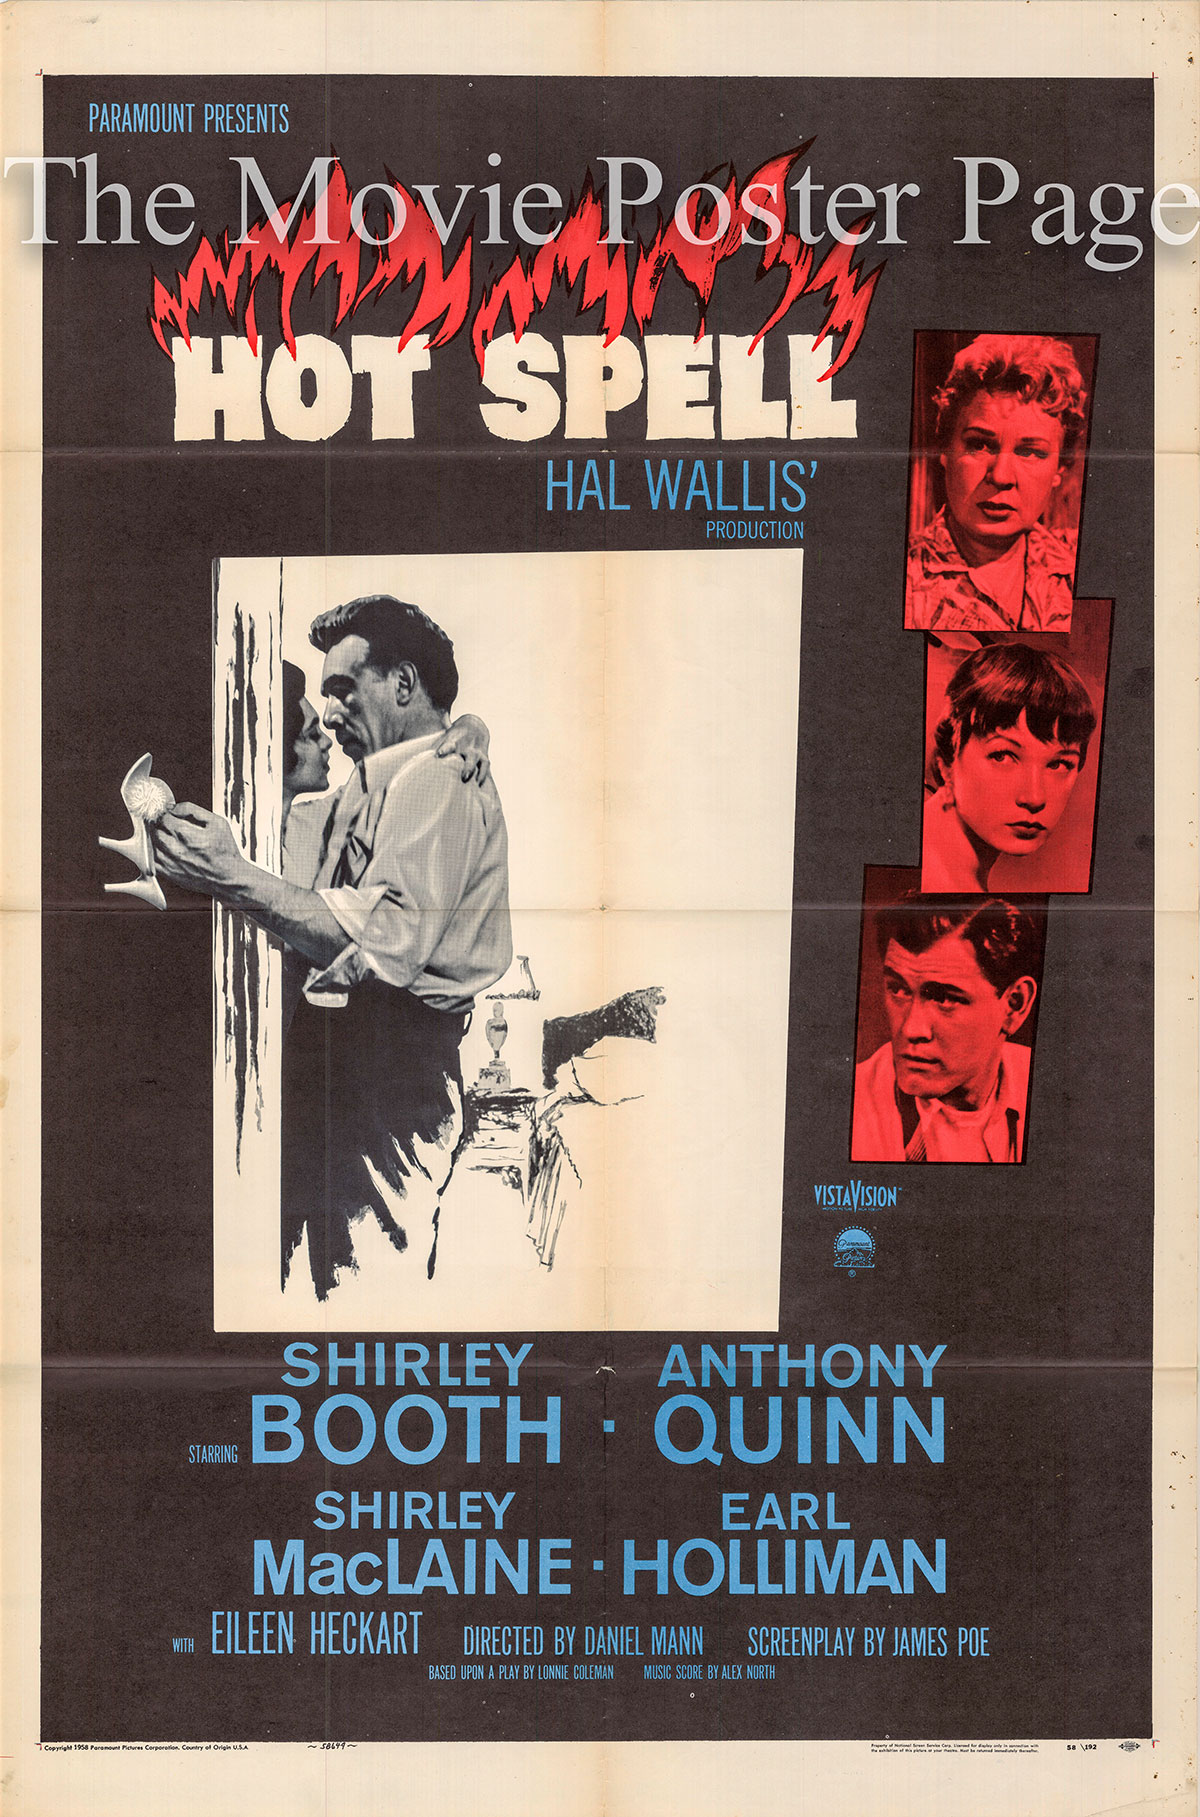 Pictured is a US one-sheet poster for the 1958 Daniel Mann film Hot Spell starring Anthony Quinn.